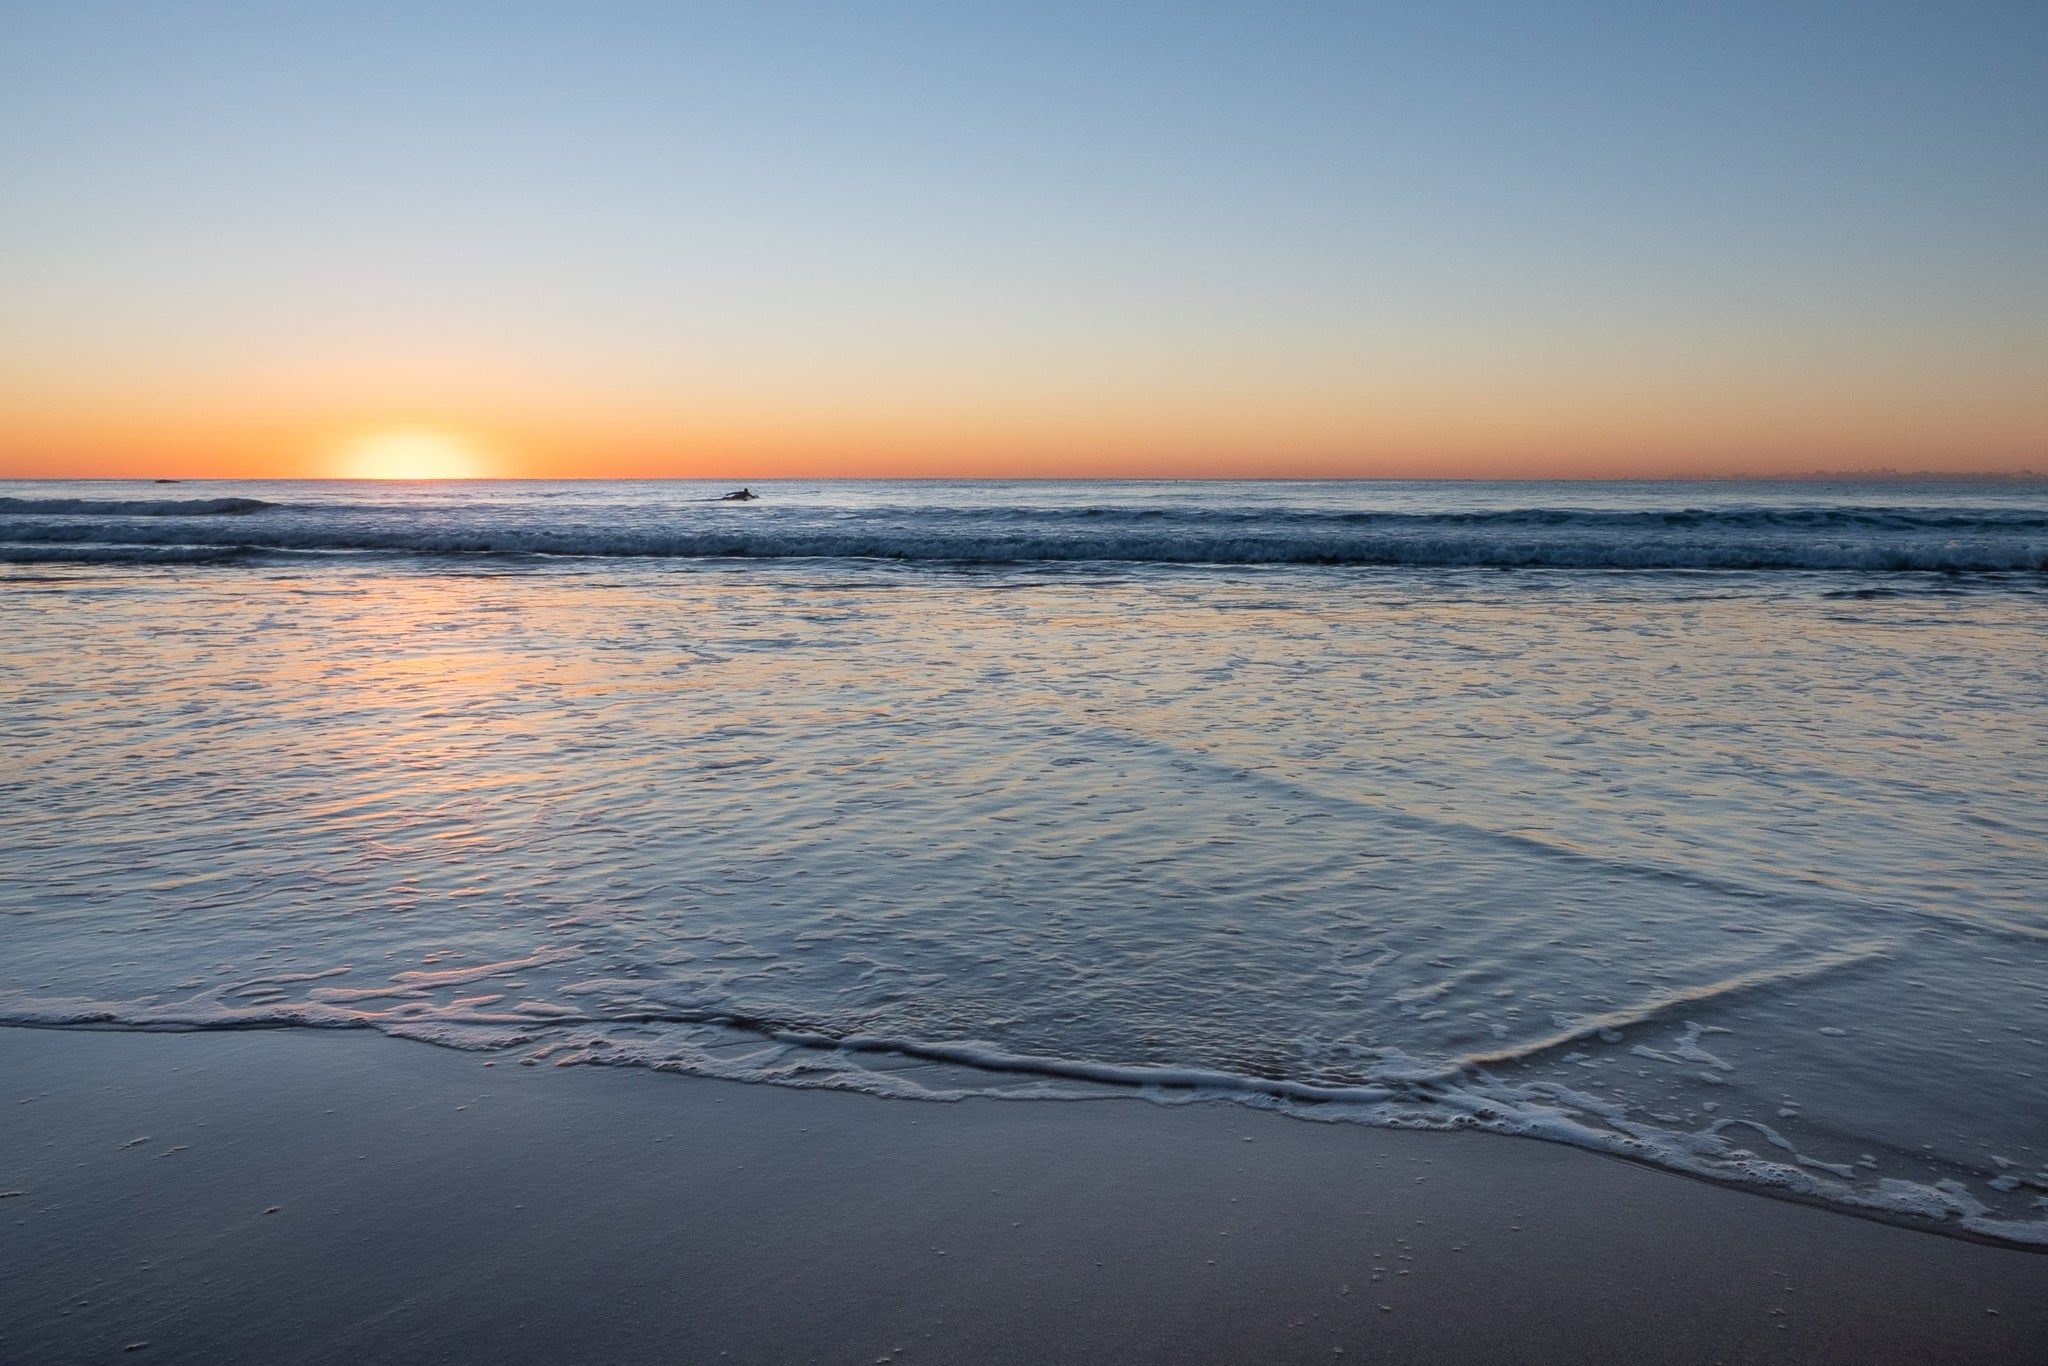 Sunrise photo from the 11th June 2019 at Manly beach in Sydney